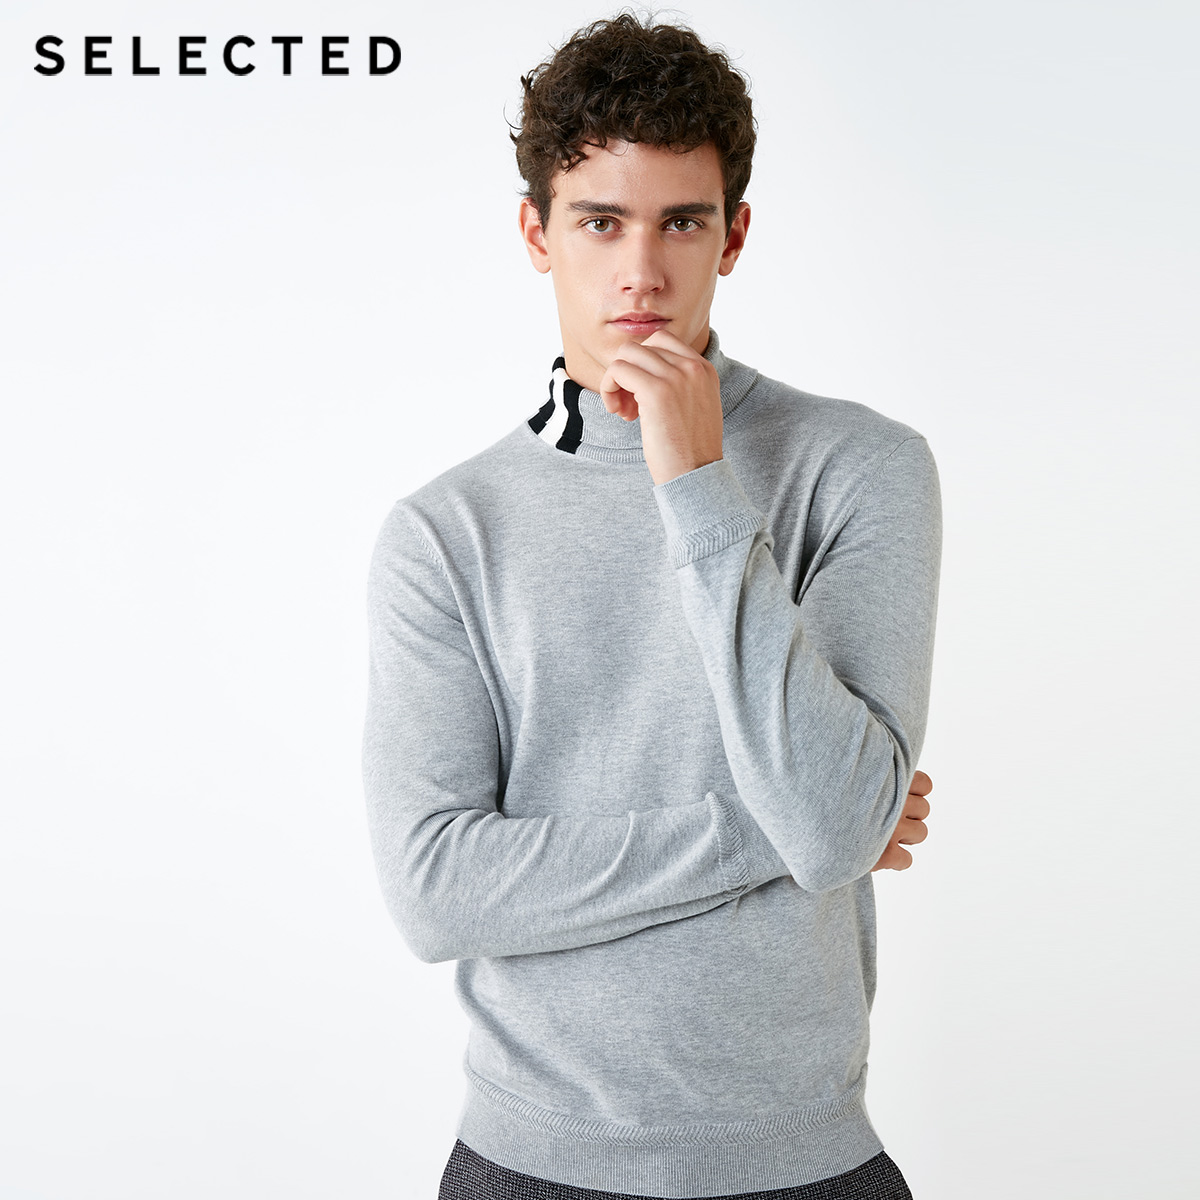 SELECTED Men's 100% Cotton Turtleneck Striped Splice Pullover High-necked Knit Sweater S | 418424523